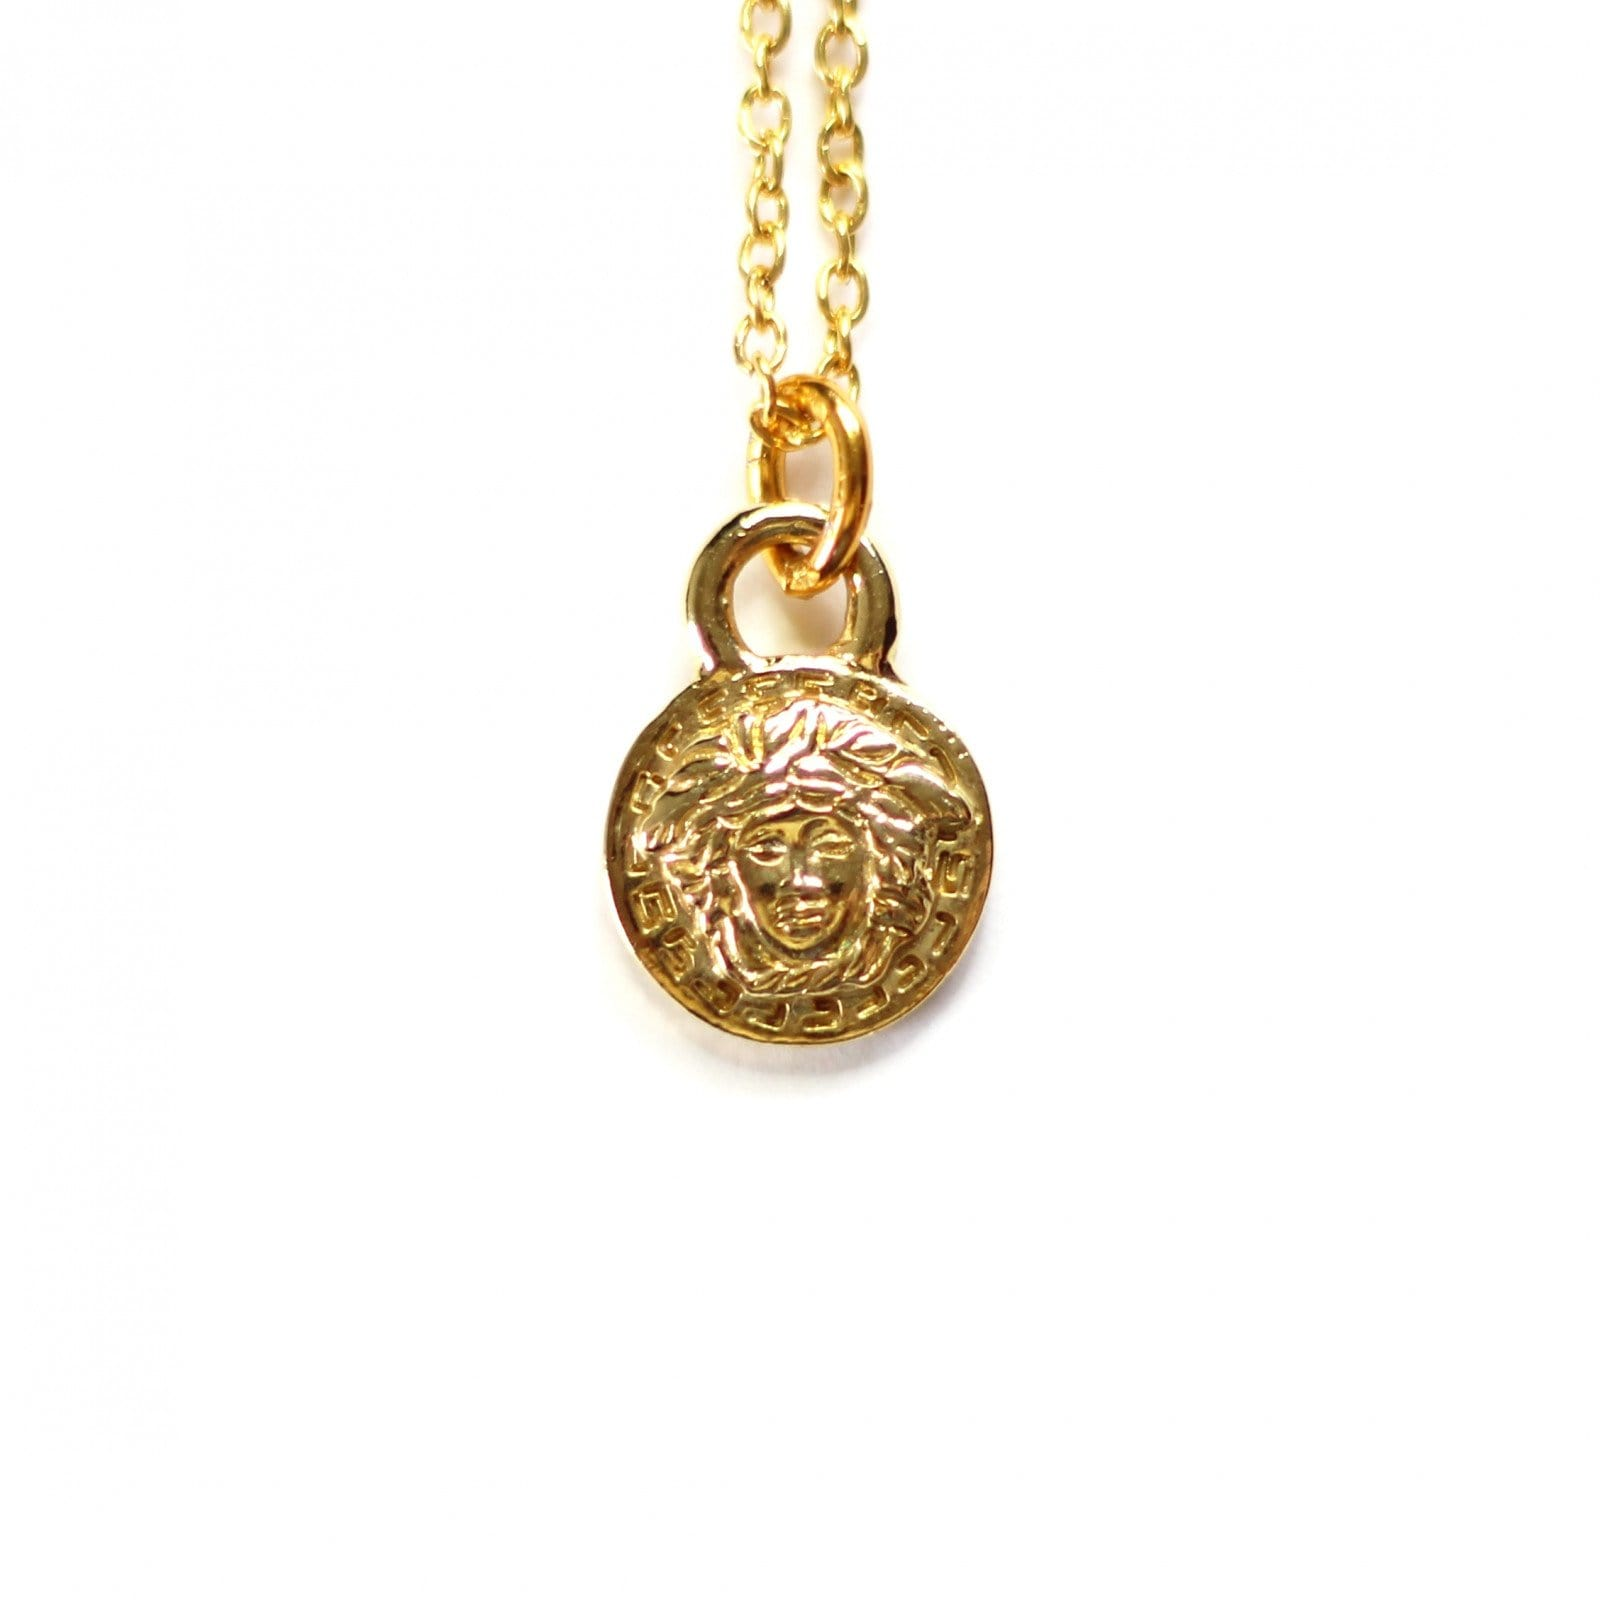 Gold Gianni Versace Small Medusa Head Coin Chain RSTKD Vintage